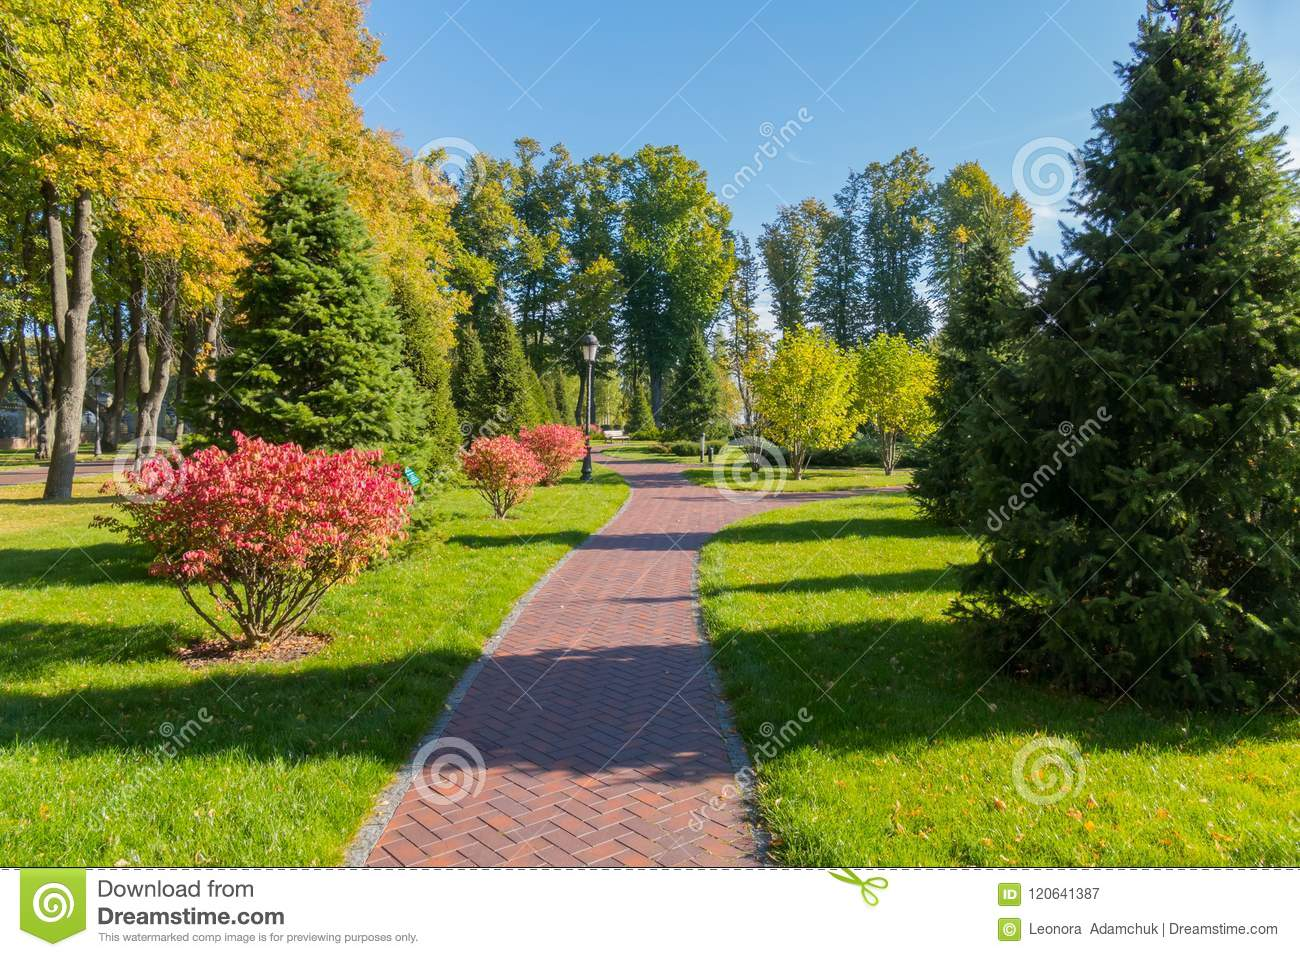 High Coniferous Trees And Beautiful Small Shrubs With Pink Flowers